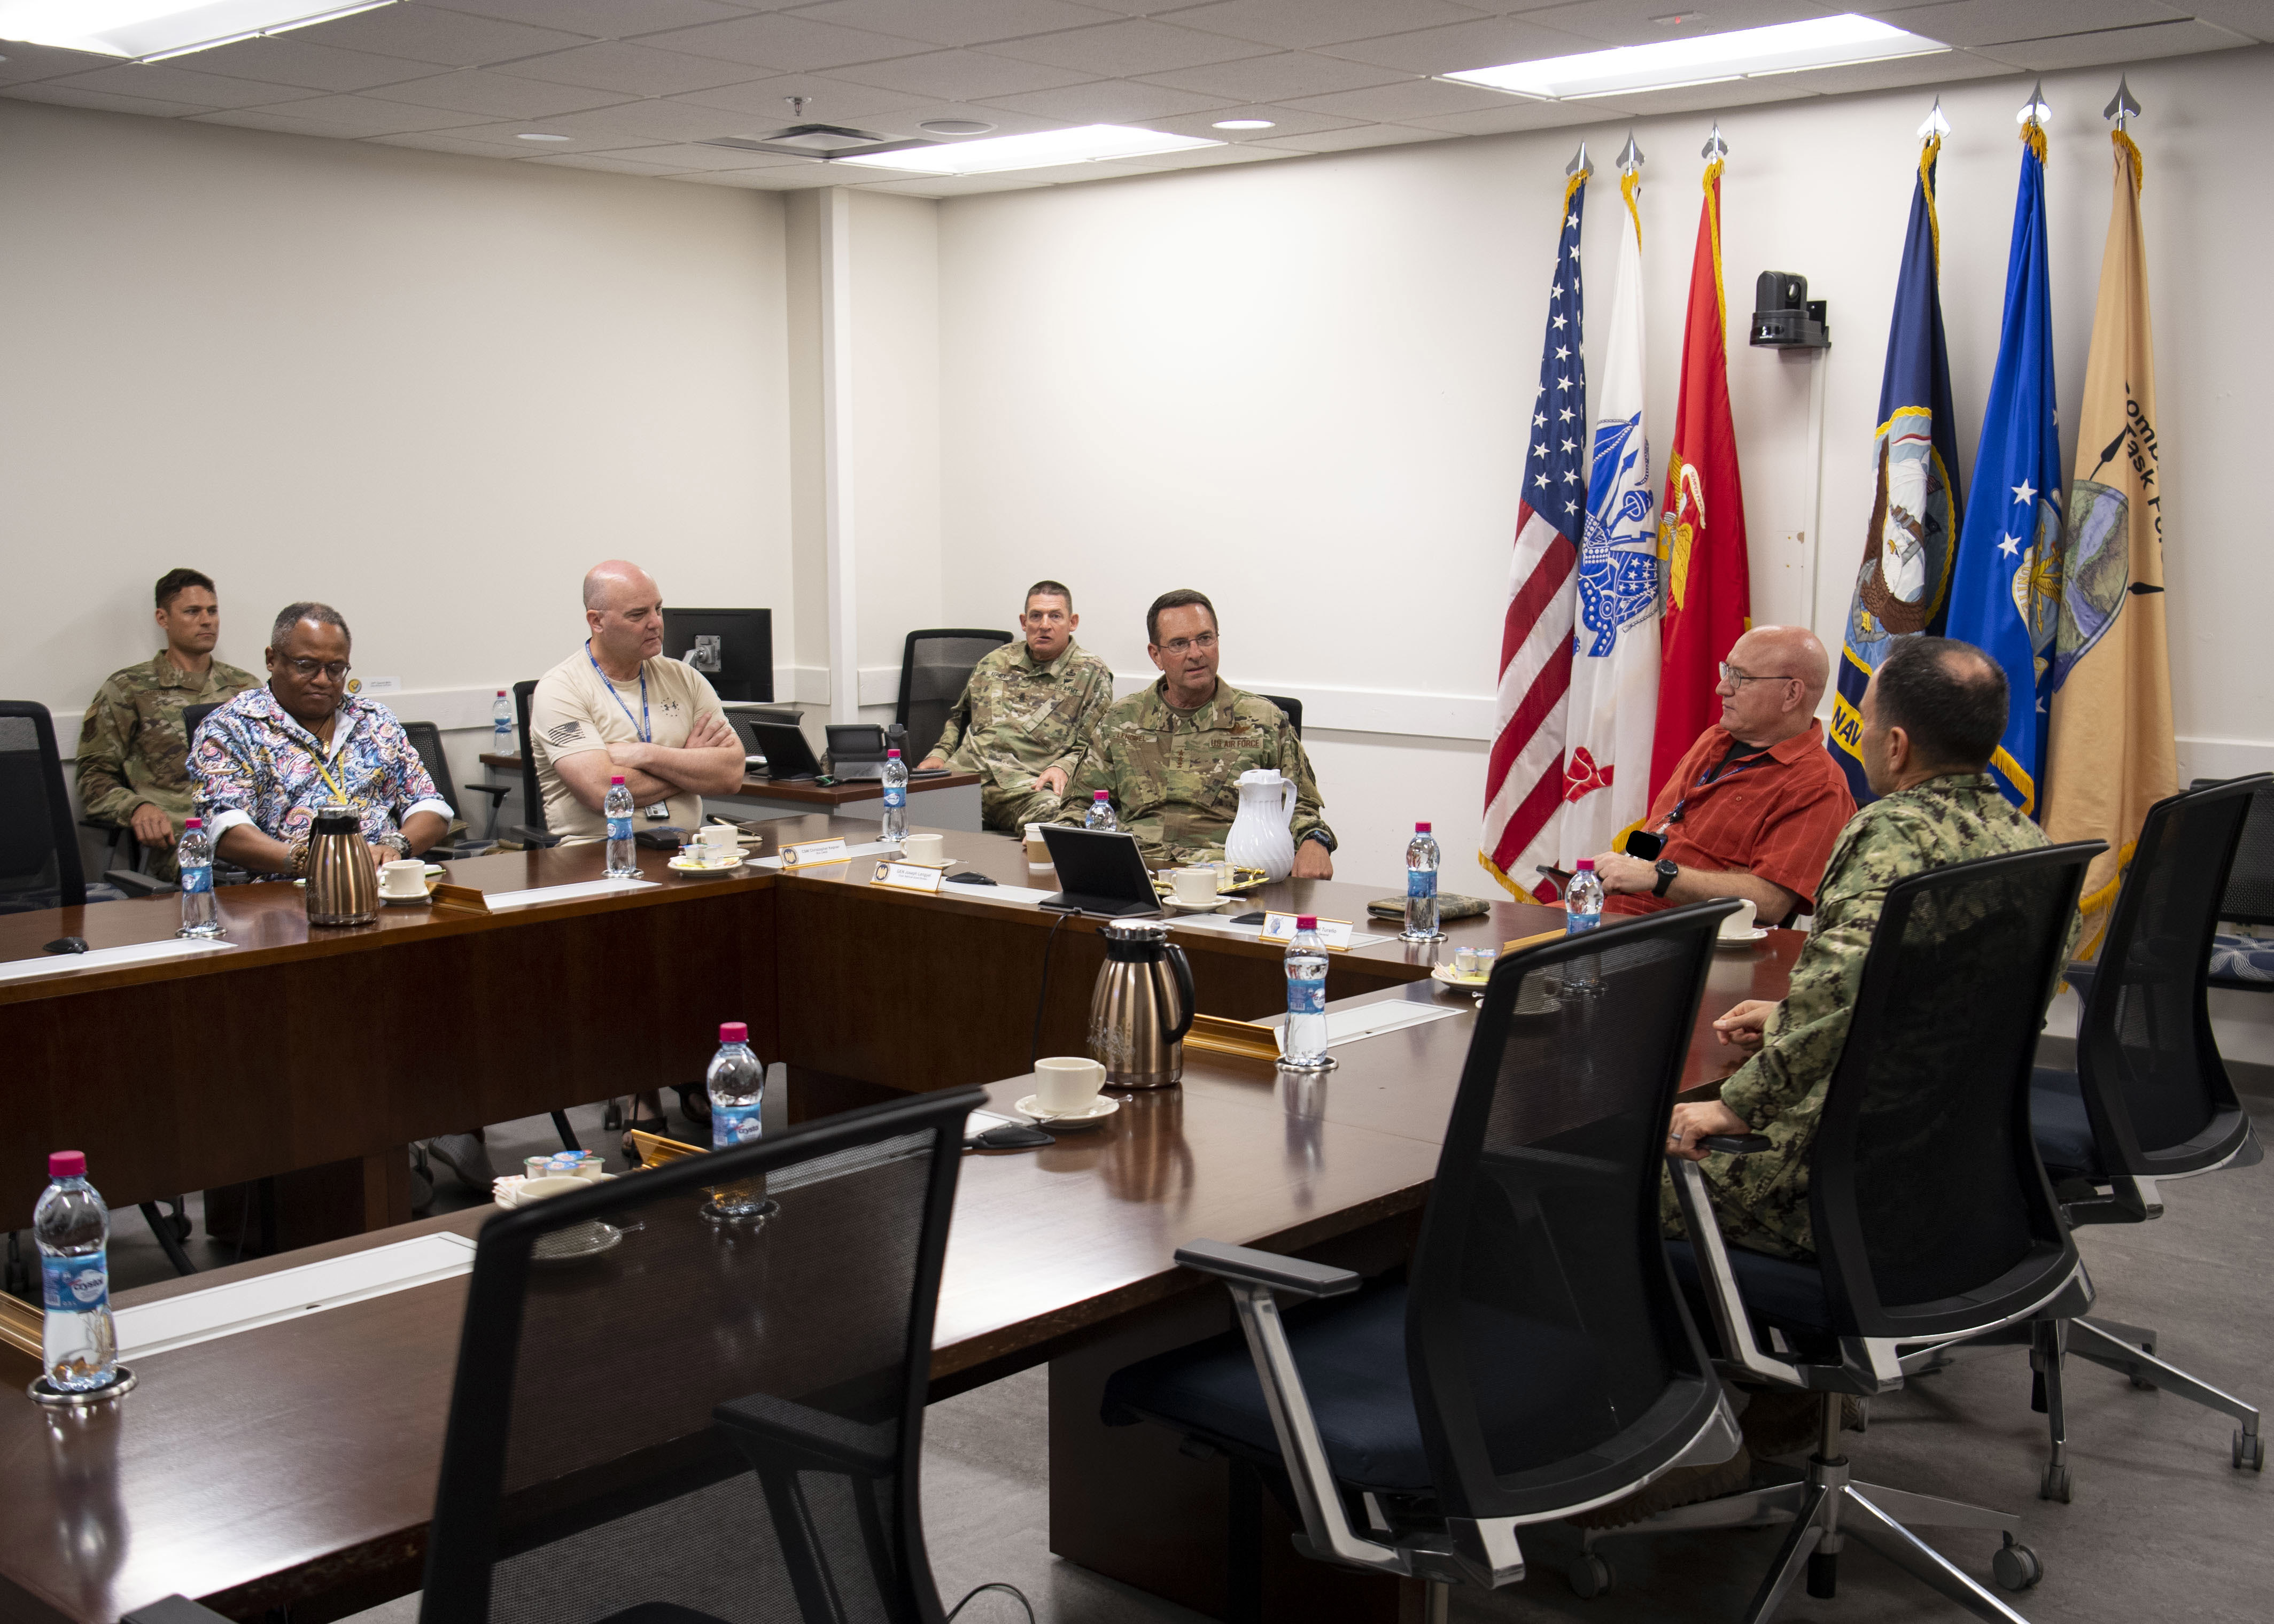 U.S. Air Force Gen. Joseph Lengyel, chief of the National Guard Bureau, speaks with Combined Joint Task Force-Horn of Africa and Camp Lemonnier leadership at Camp Lemonnier, Djibouti, July 7, 2019. While visiting, Lengyel toured the installation and learned about the various missions that take place on Camp Lemonnier. (U.S. Air Force photo by Staff Sgt. J.D. Strong II)